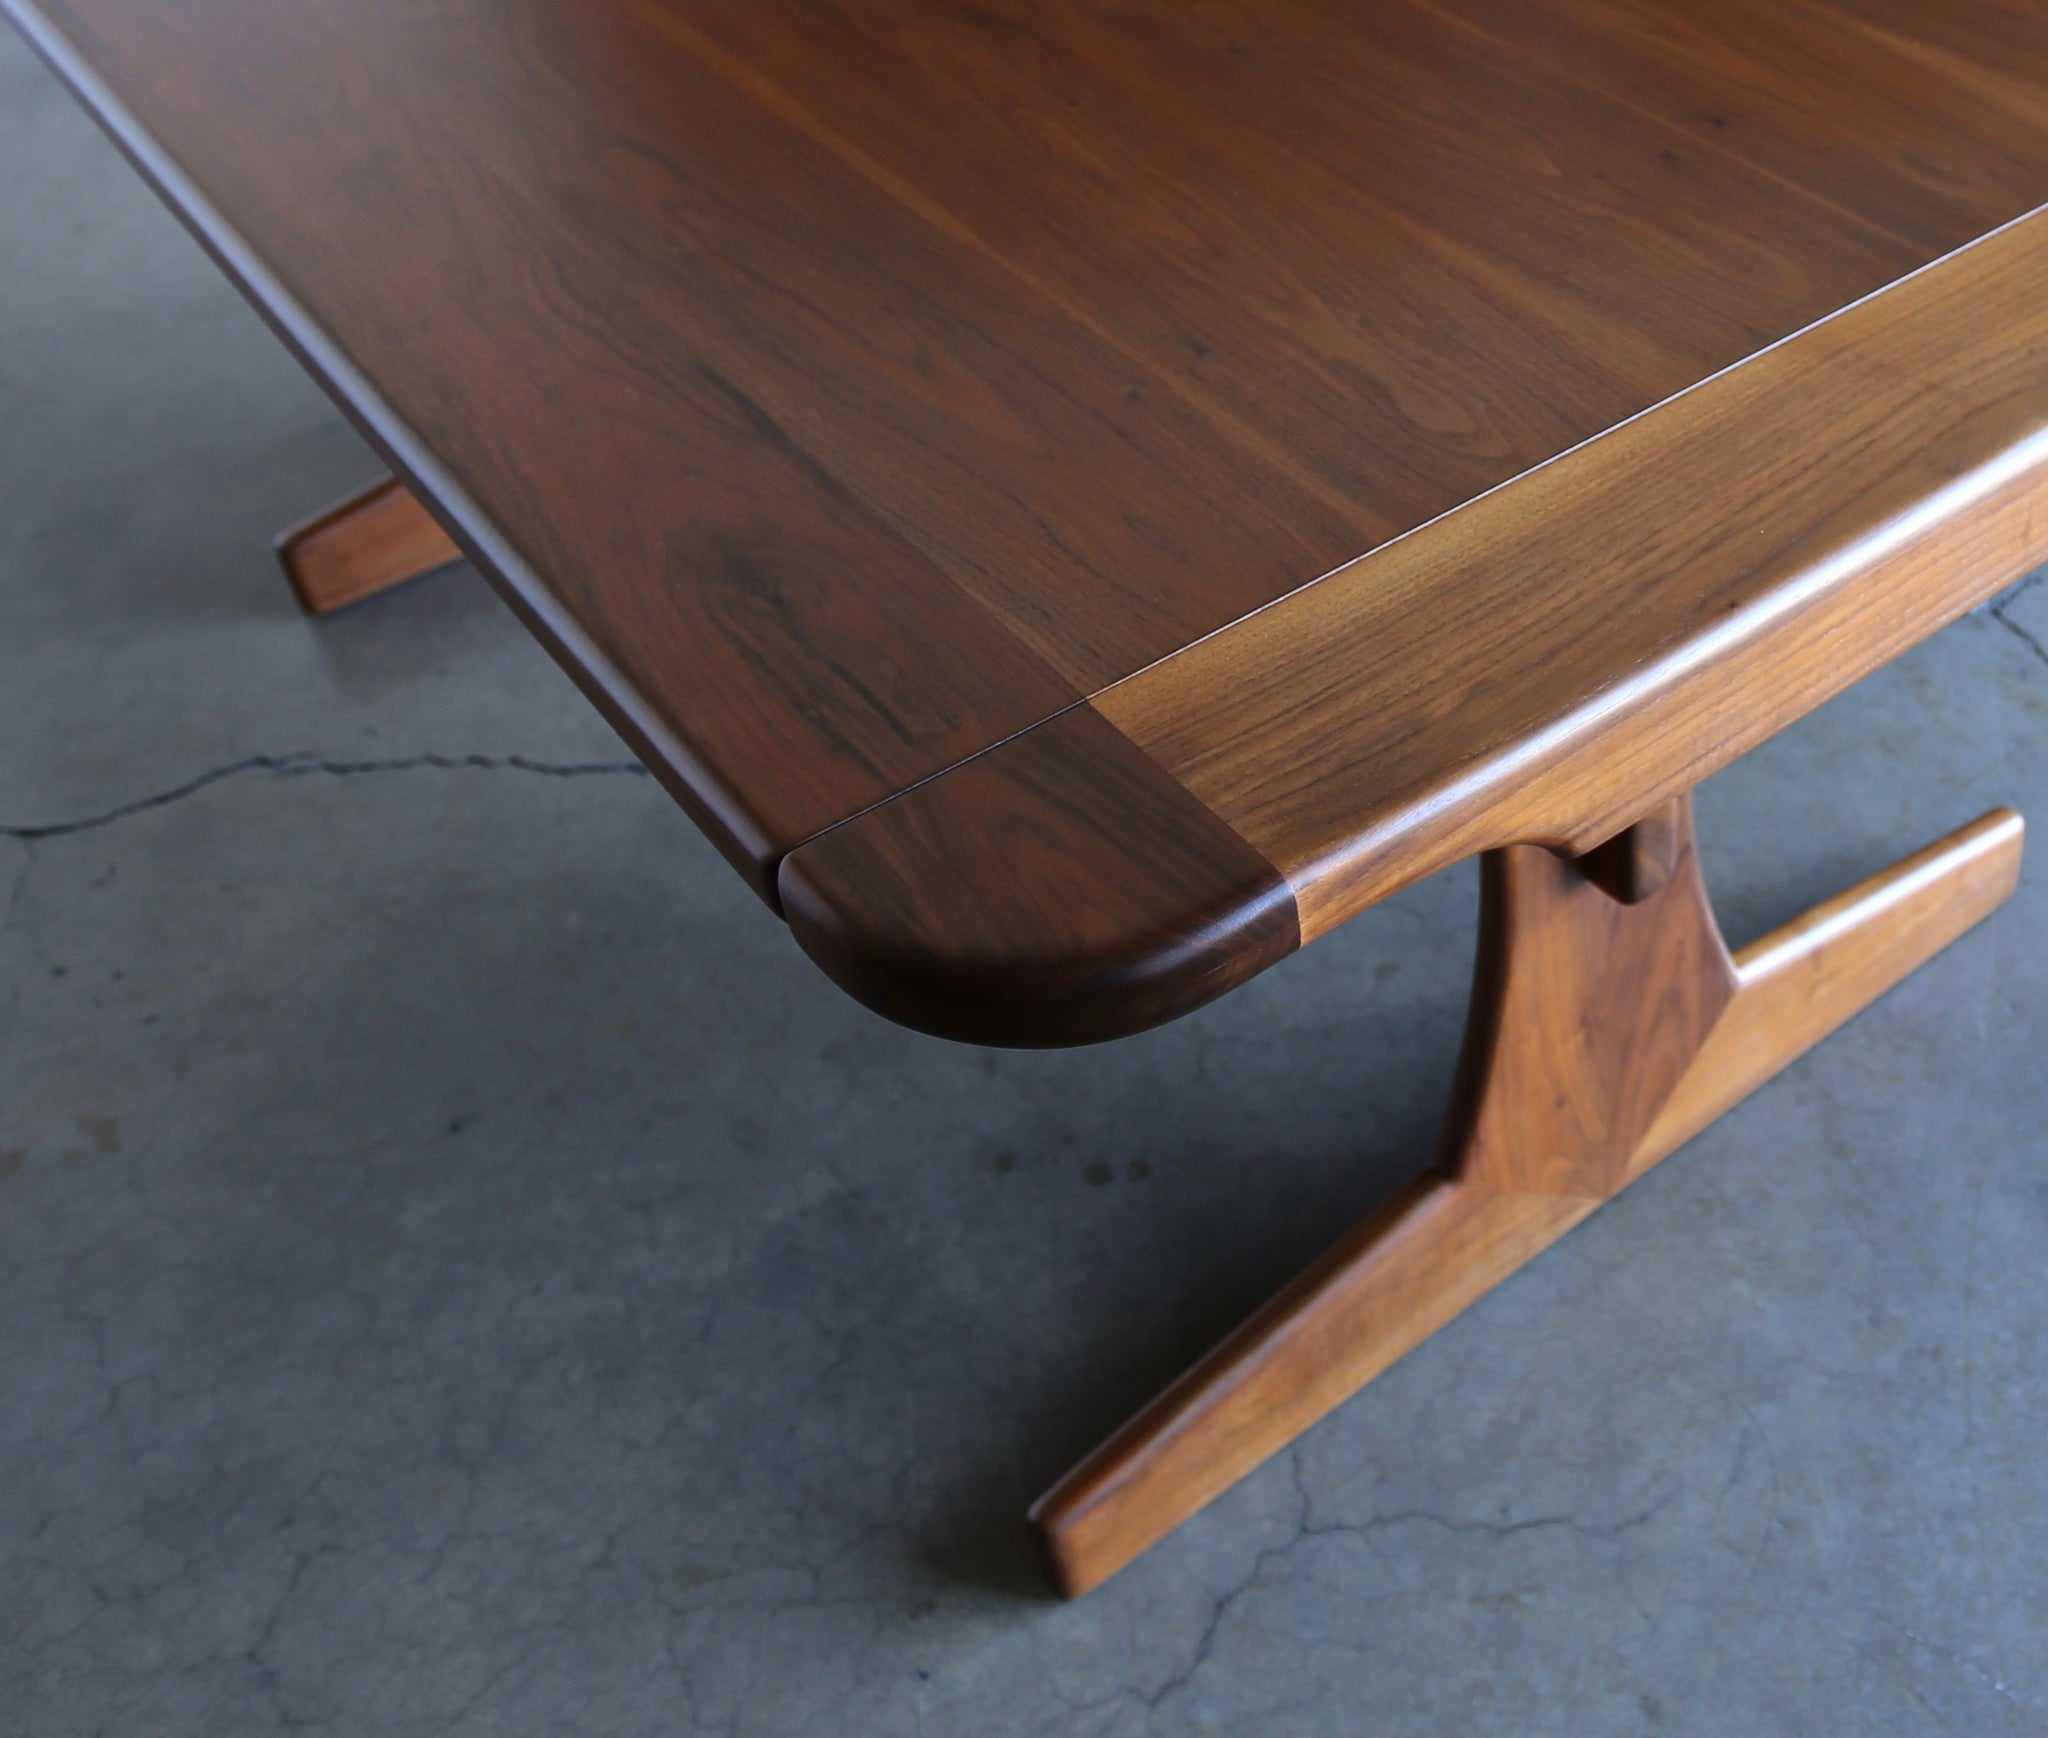 Lou Hodges Dining / Writing Table for California Design Group circa 1975